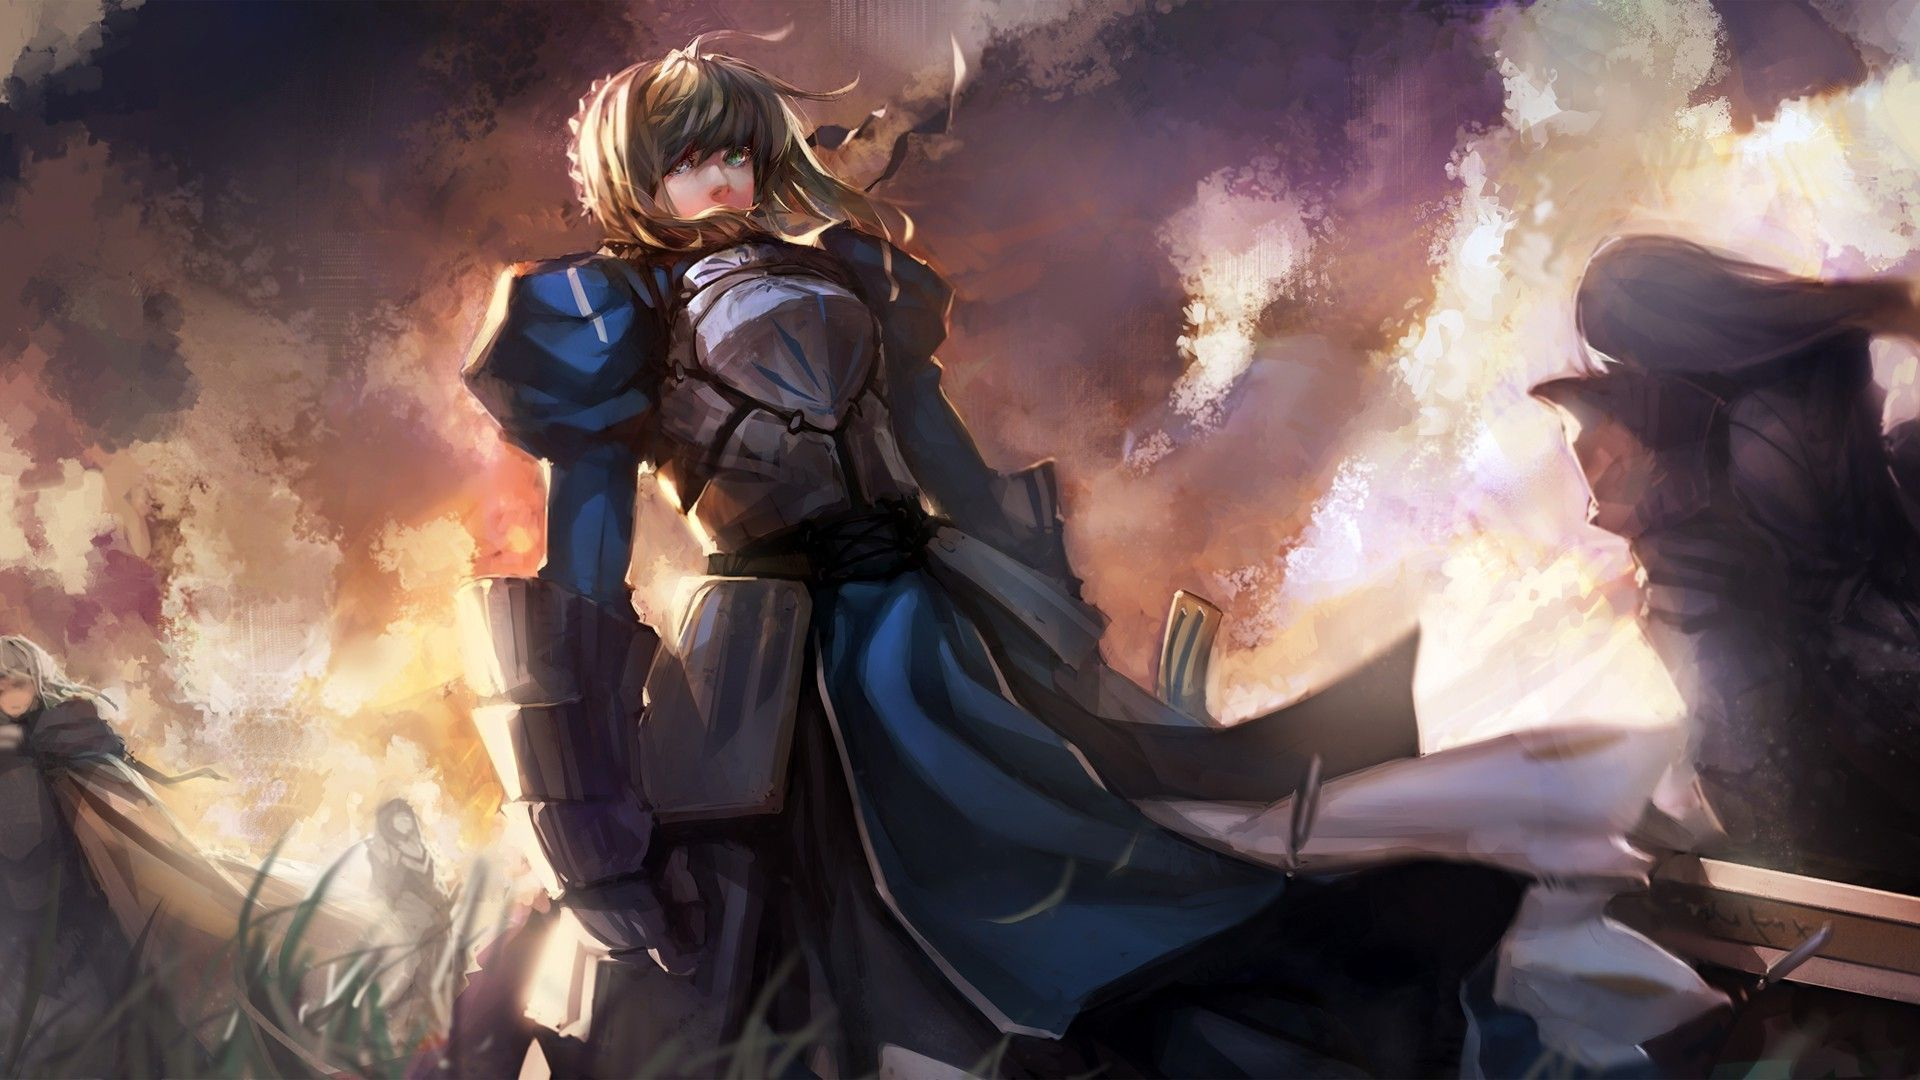 Saber   Fate stay night wallpaper 14364 1920x1080